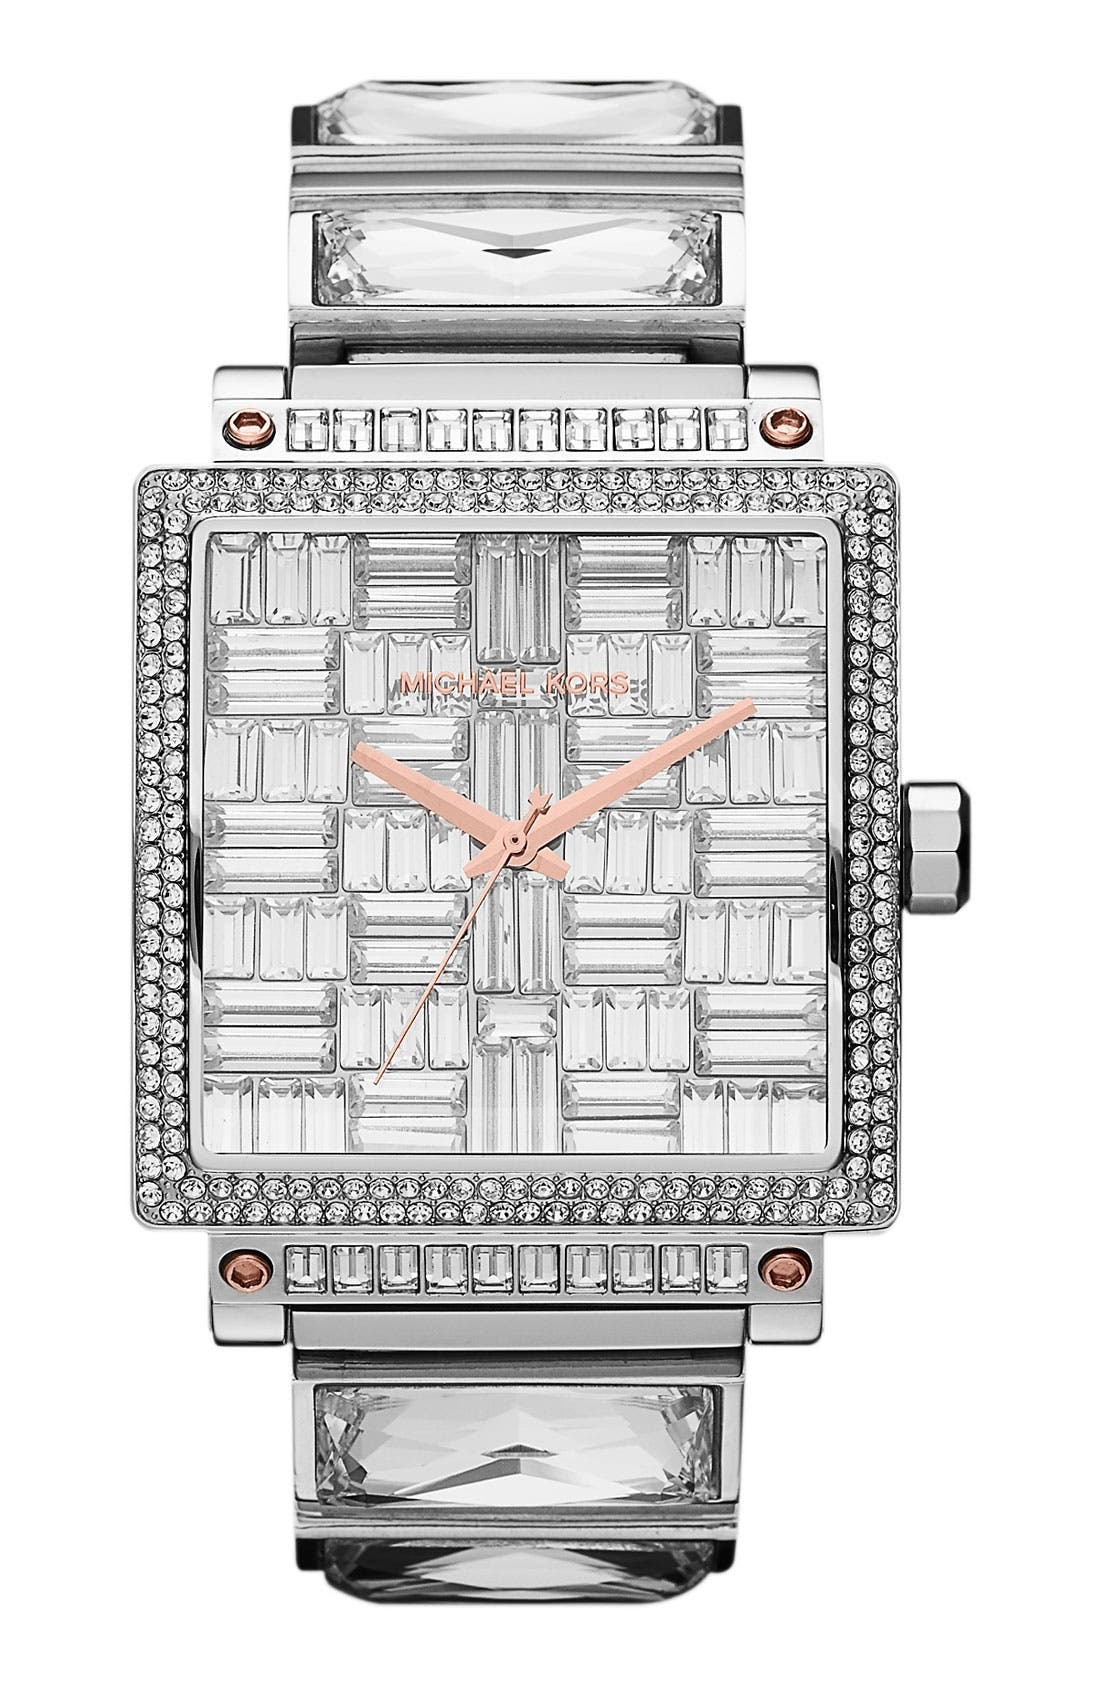 Main Image - Michael Kors 'Uptown' Baguette Crystal Square Case Watch